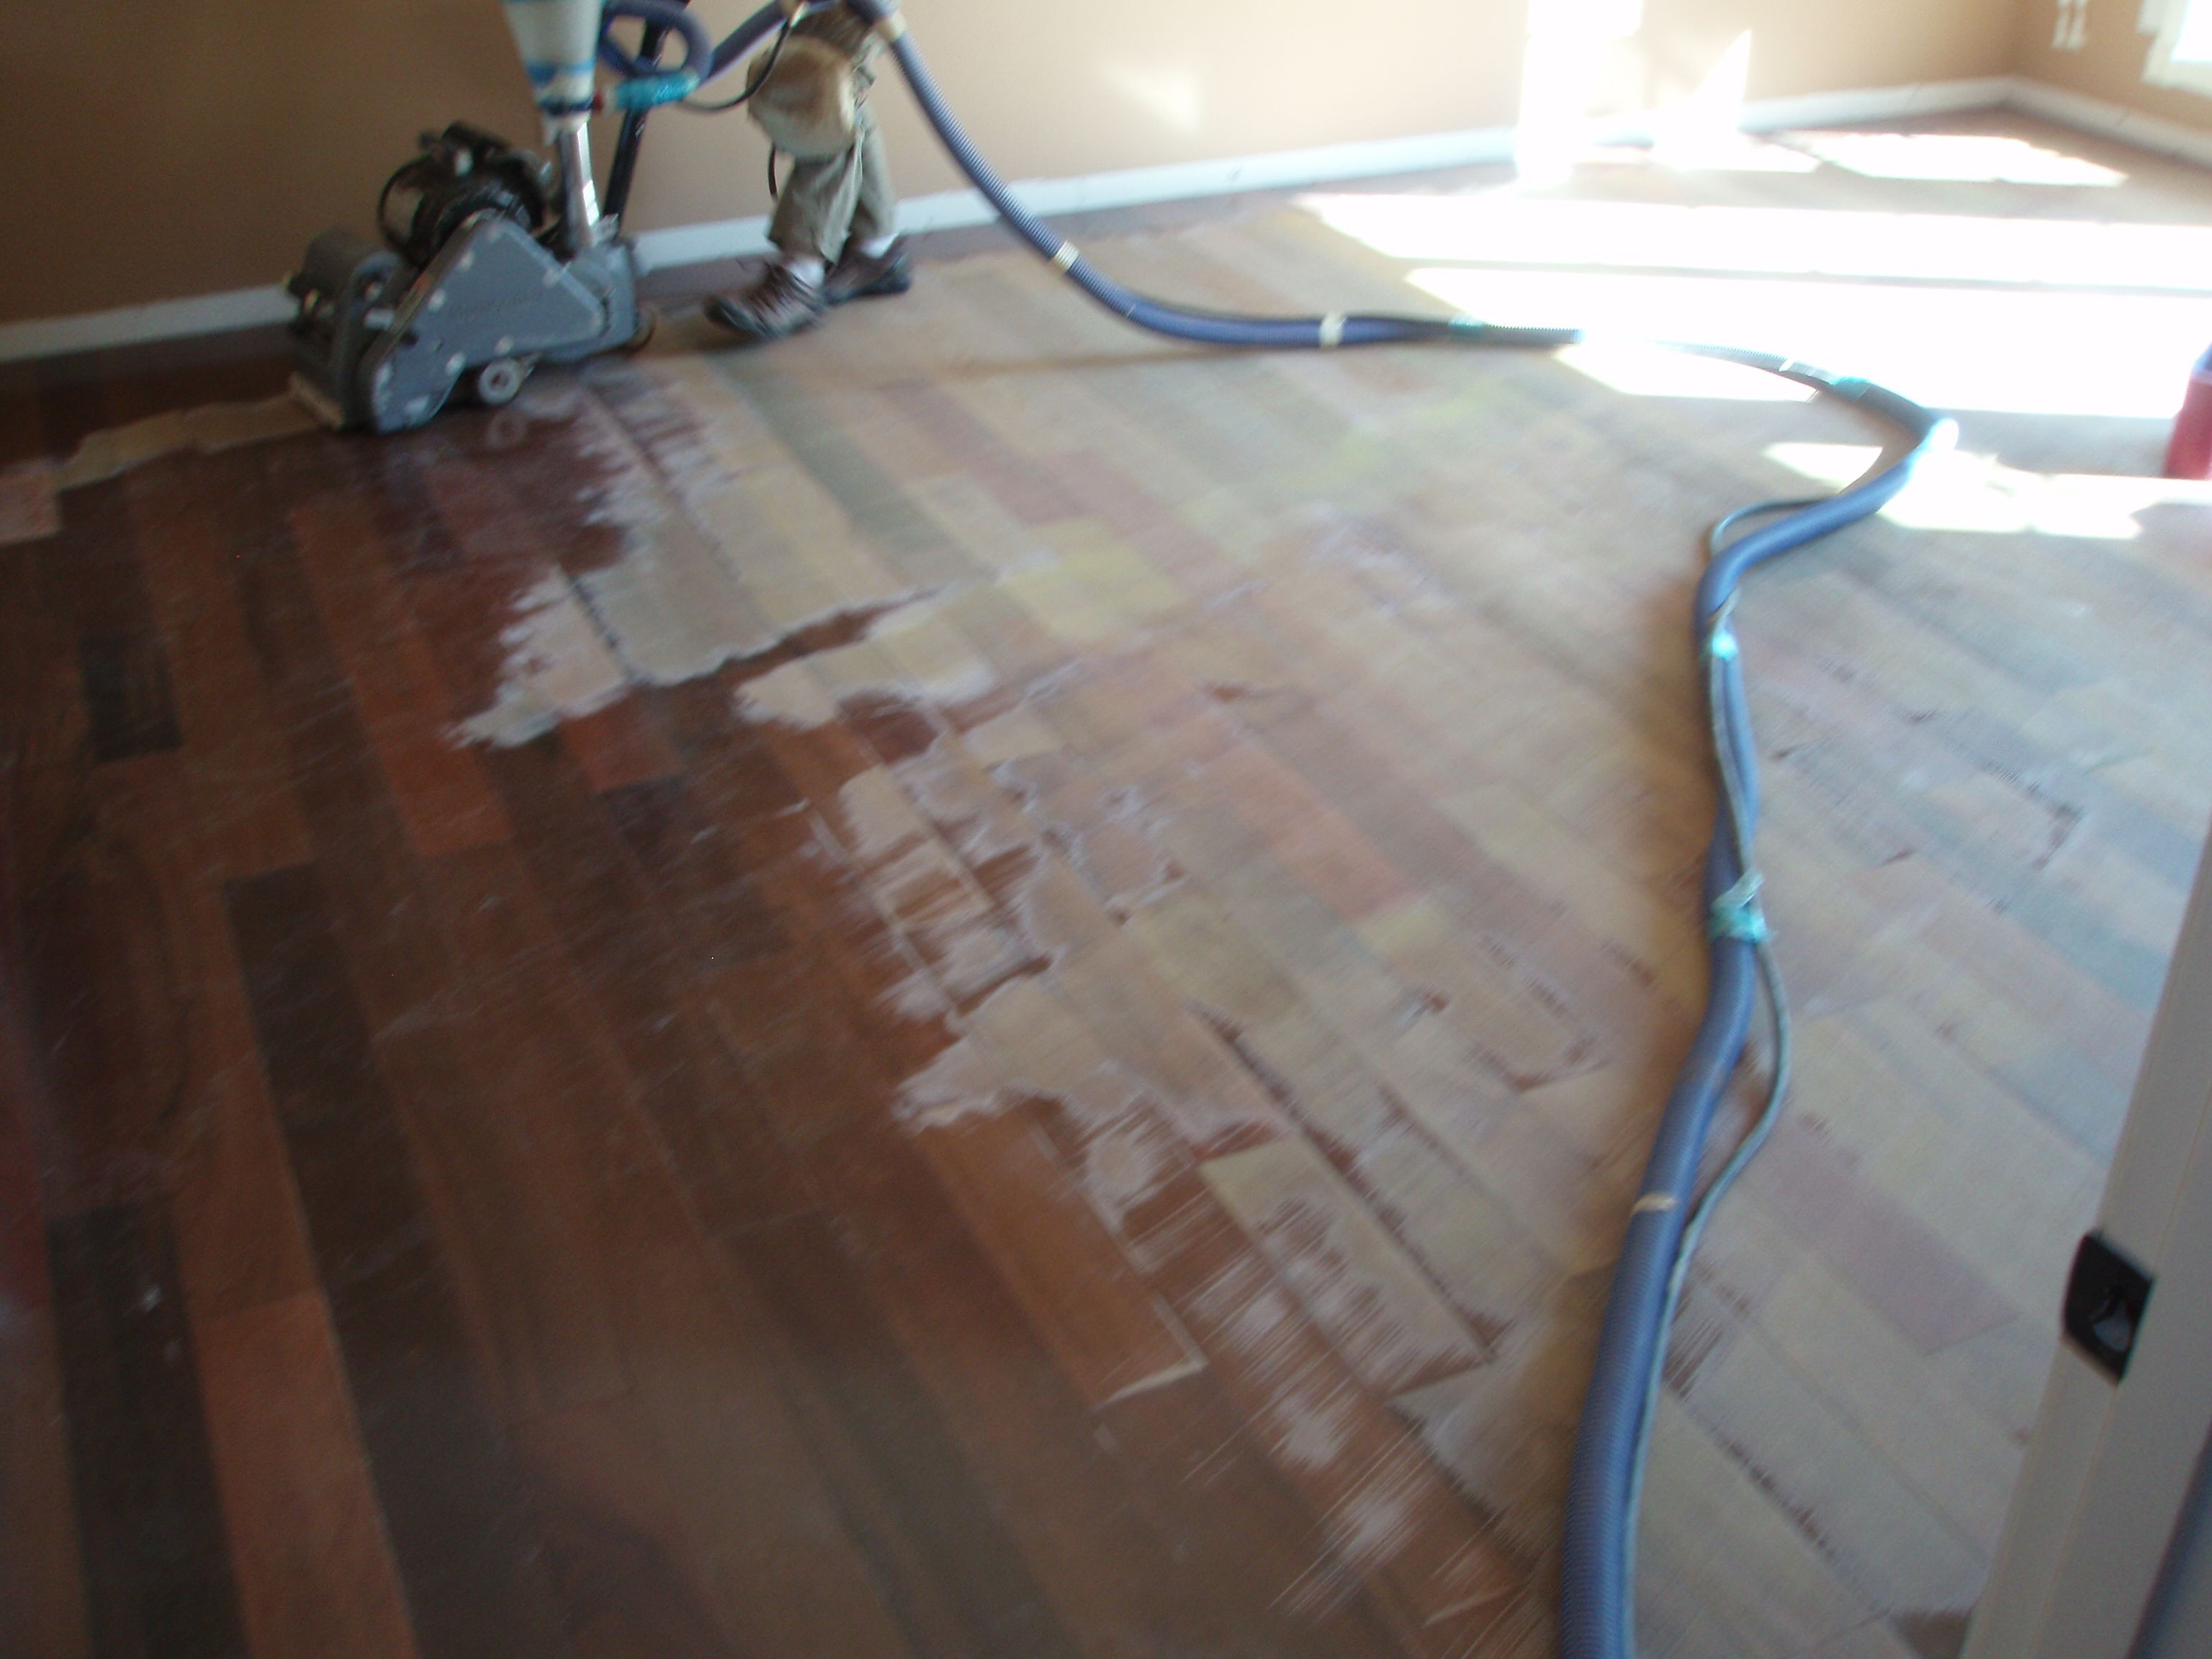 hardwood floor refinishing cost square foot of hardwood floor cleaner professional floor scrubber floorwash f25 within wood floor installation cost will refinishingod floors pet stains old without sanding wood with